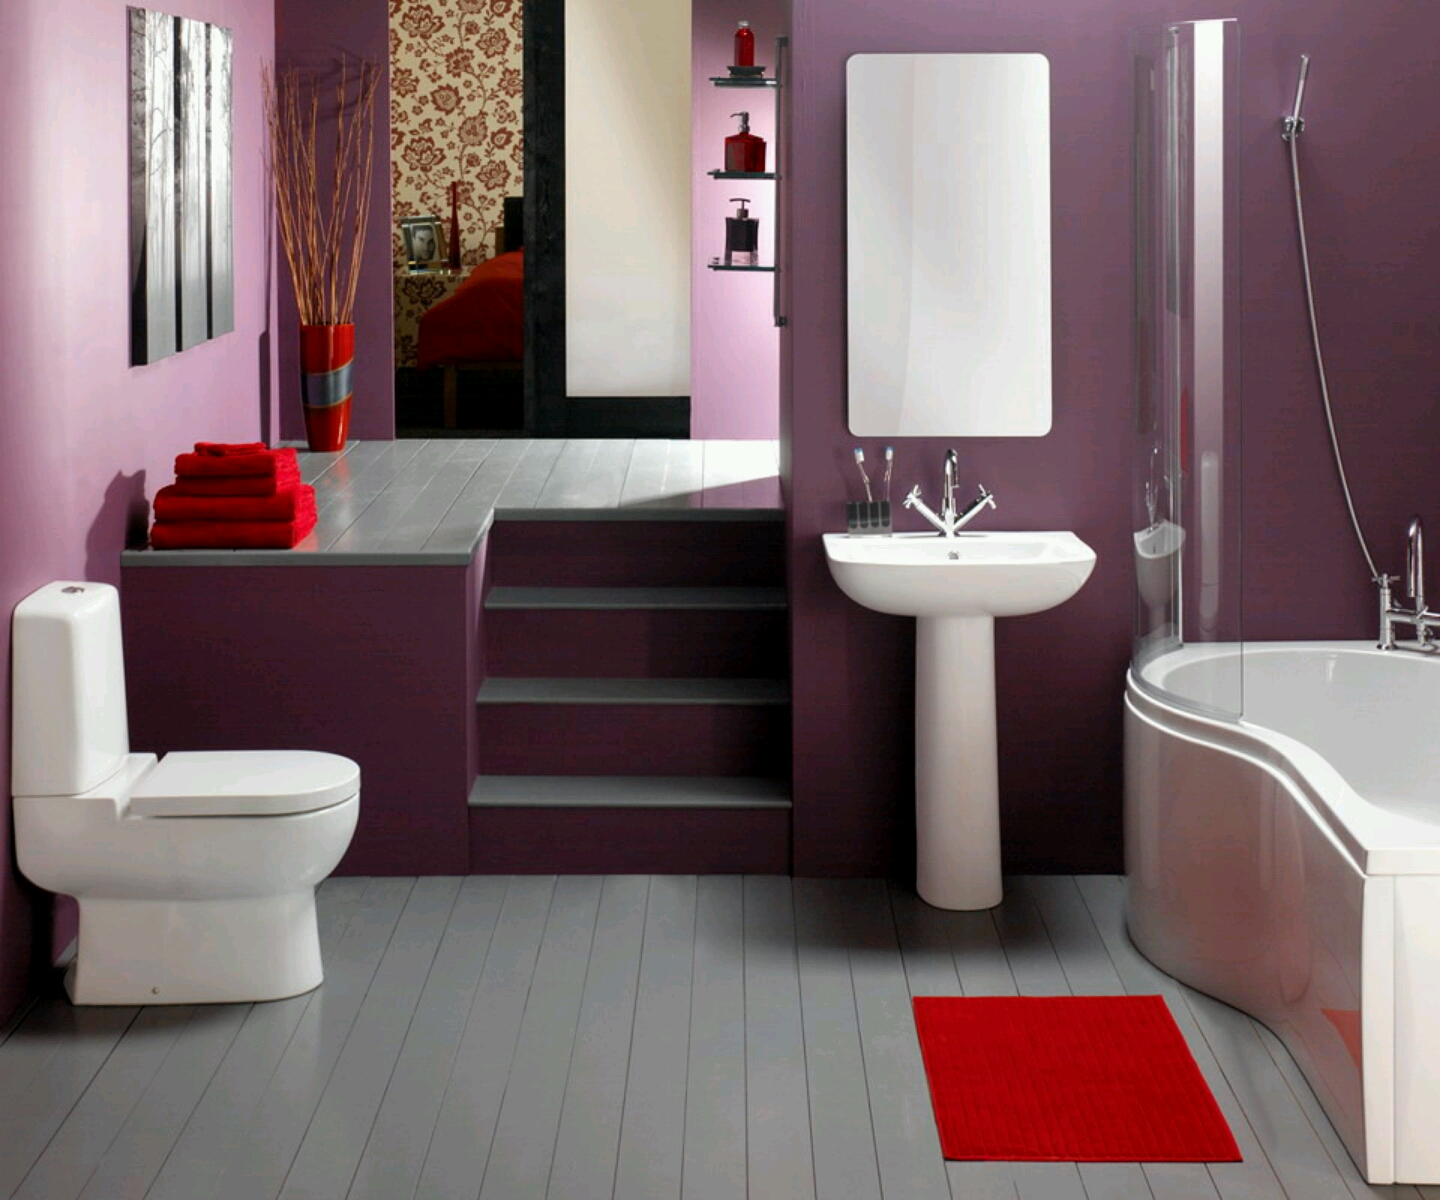 New home designs latest luxury modern bathrooms designs for Bathroom interior design pictures